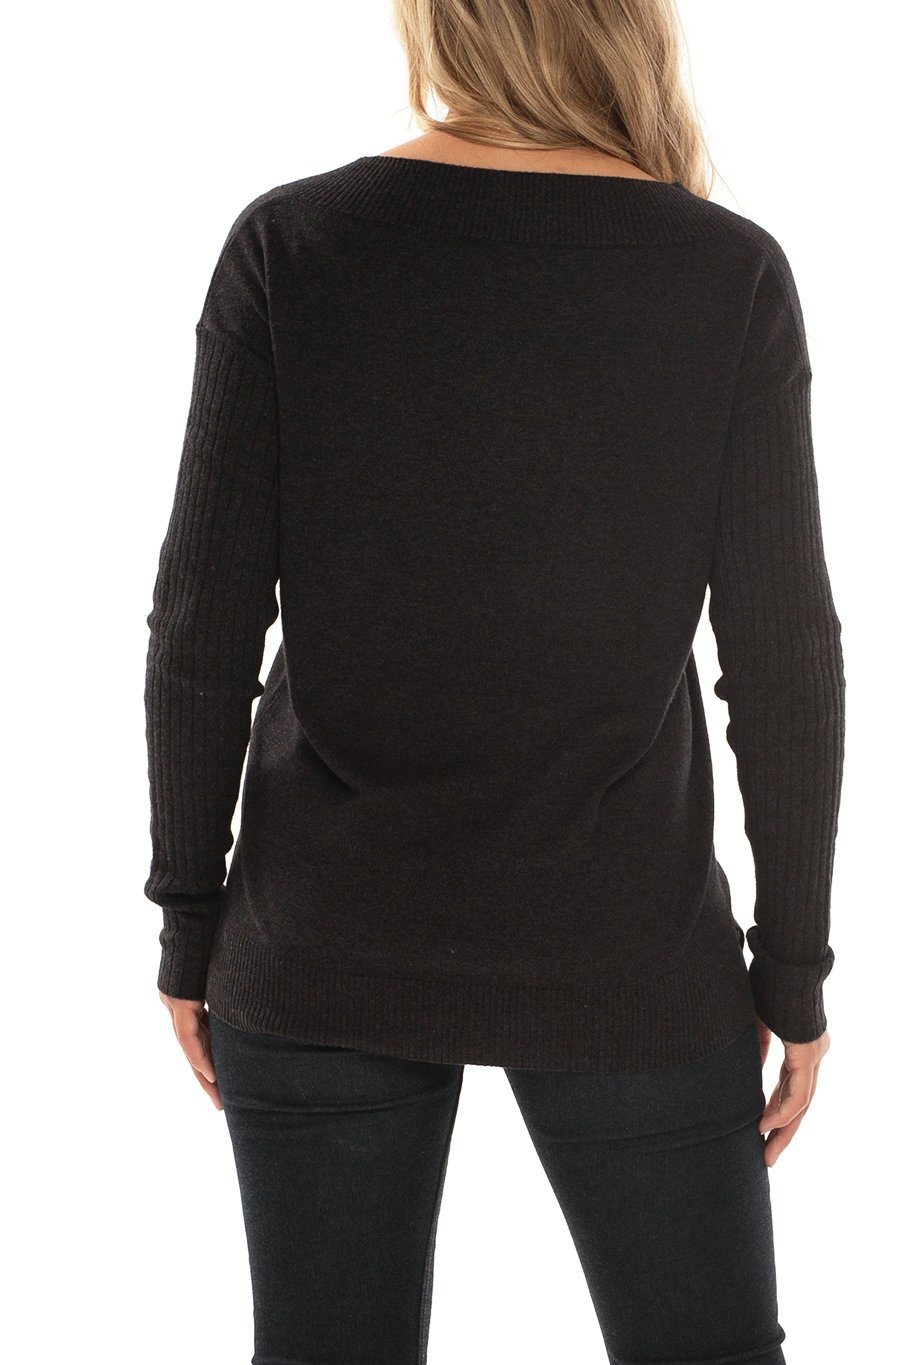 Telluride V-Neck Classic Sweater - Charcoal - Shore